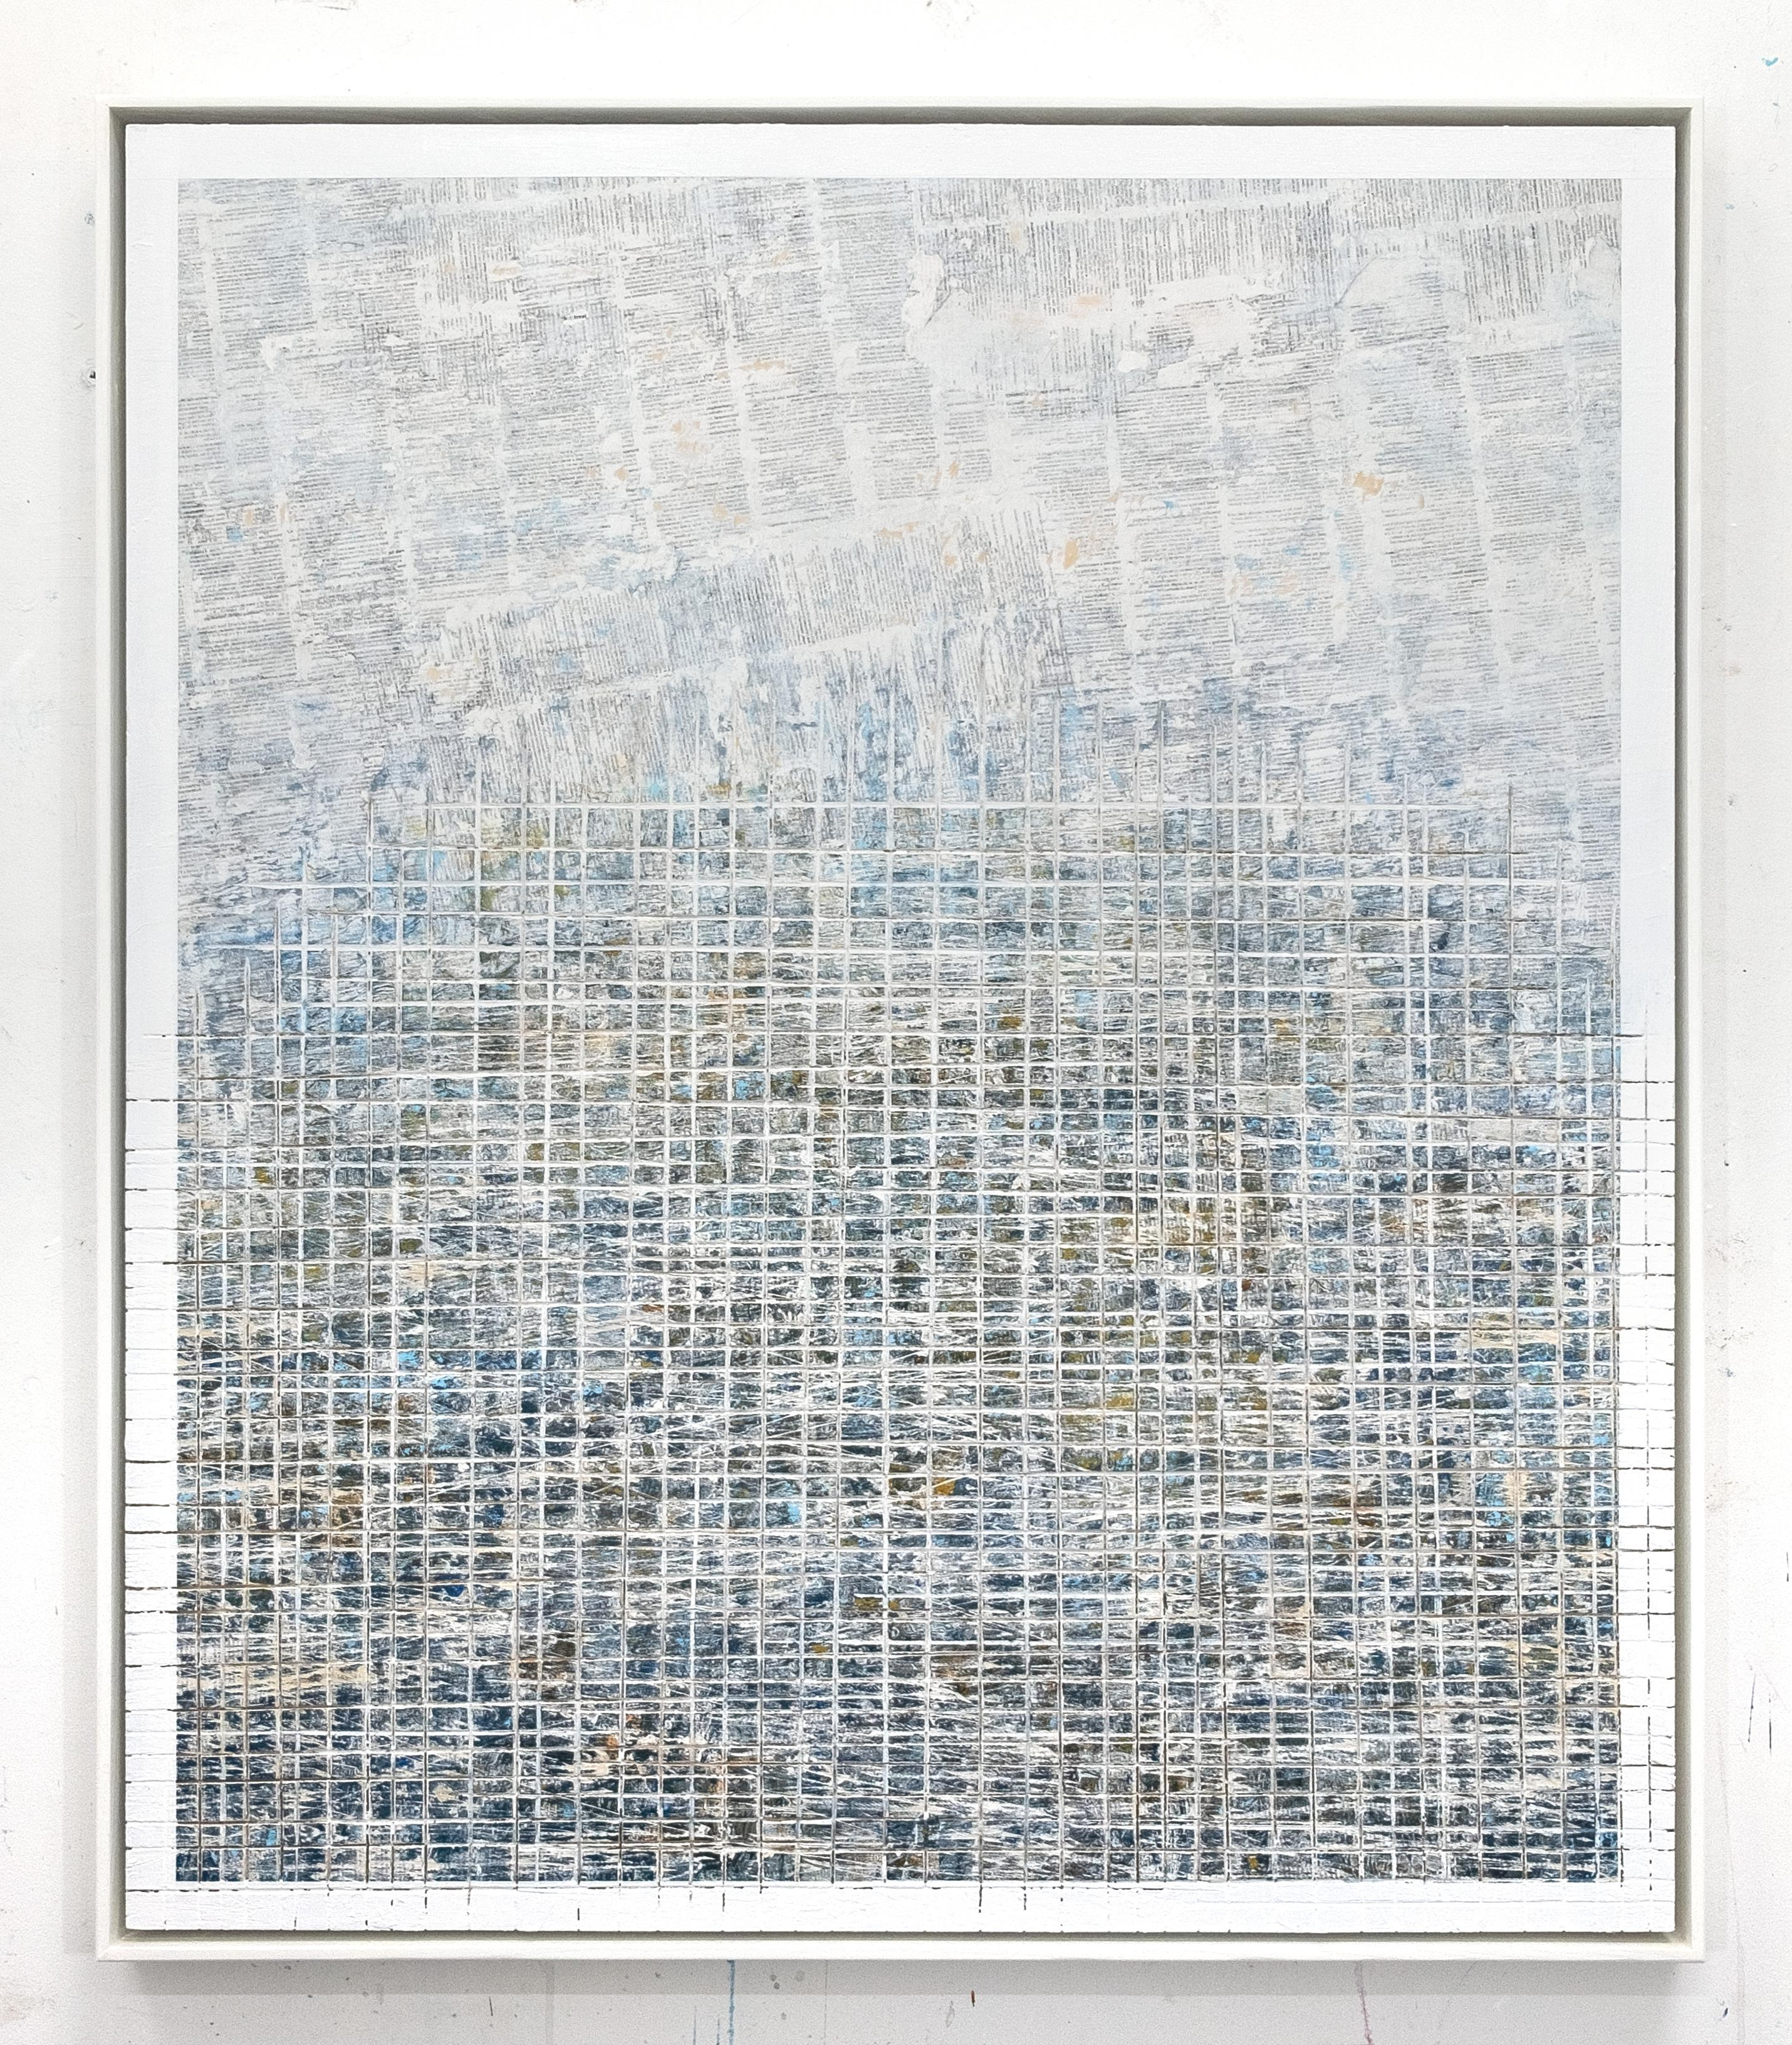 Where you've been - street art blue and white abstract framed carved painting